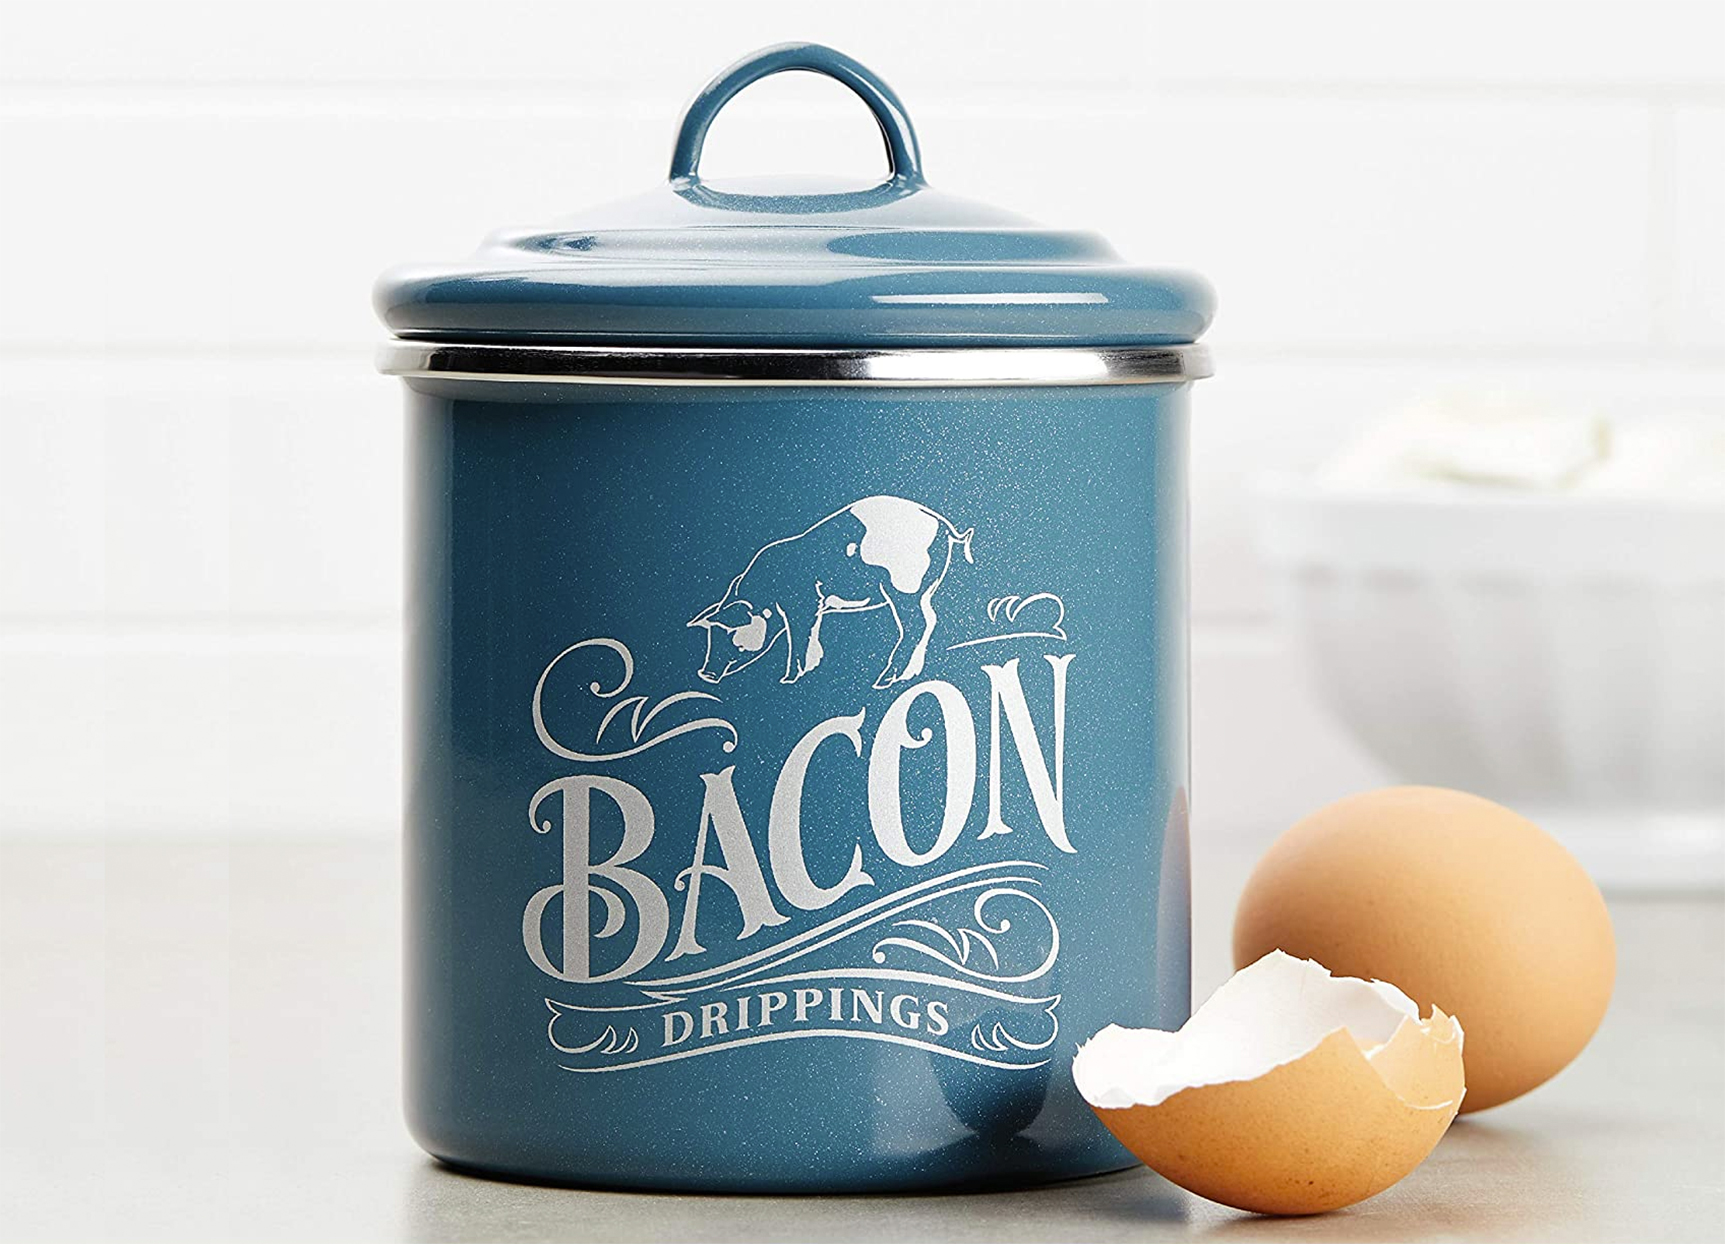 Ayesha Curry bacon drippings container in blue on kitchen counter